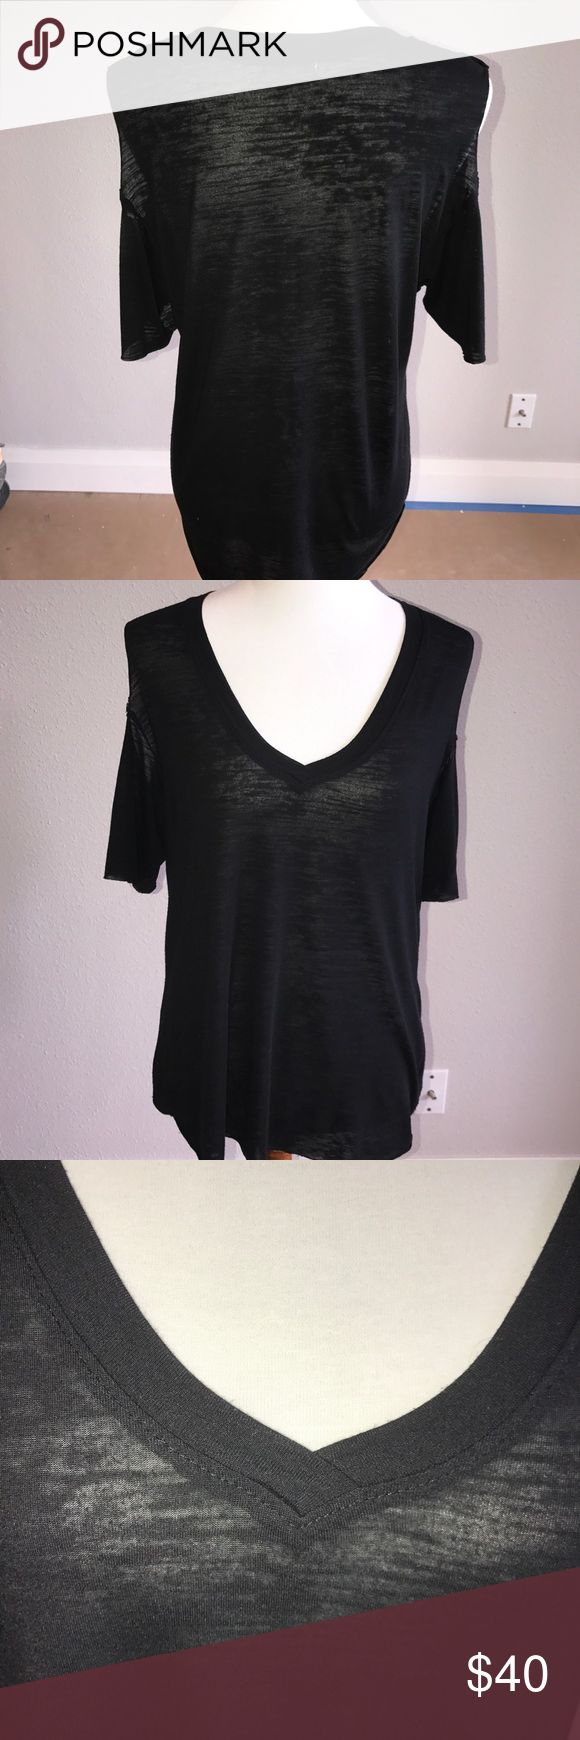 "Nation Cold Shoulder Top Black burnout like fabric NATION LTD. Woman's Burnout Cold Shoulder Pullover Top. Slight burnout/slubbing of fabric. Light weight. NATION brand made in the 🇺🇸.20"" Armpit to Armpit. Length 24"". In very good condition.  Purchased last summer at Bloomingdales. NATION LTD Tops Tees - Short Sleeve"